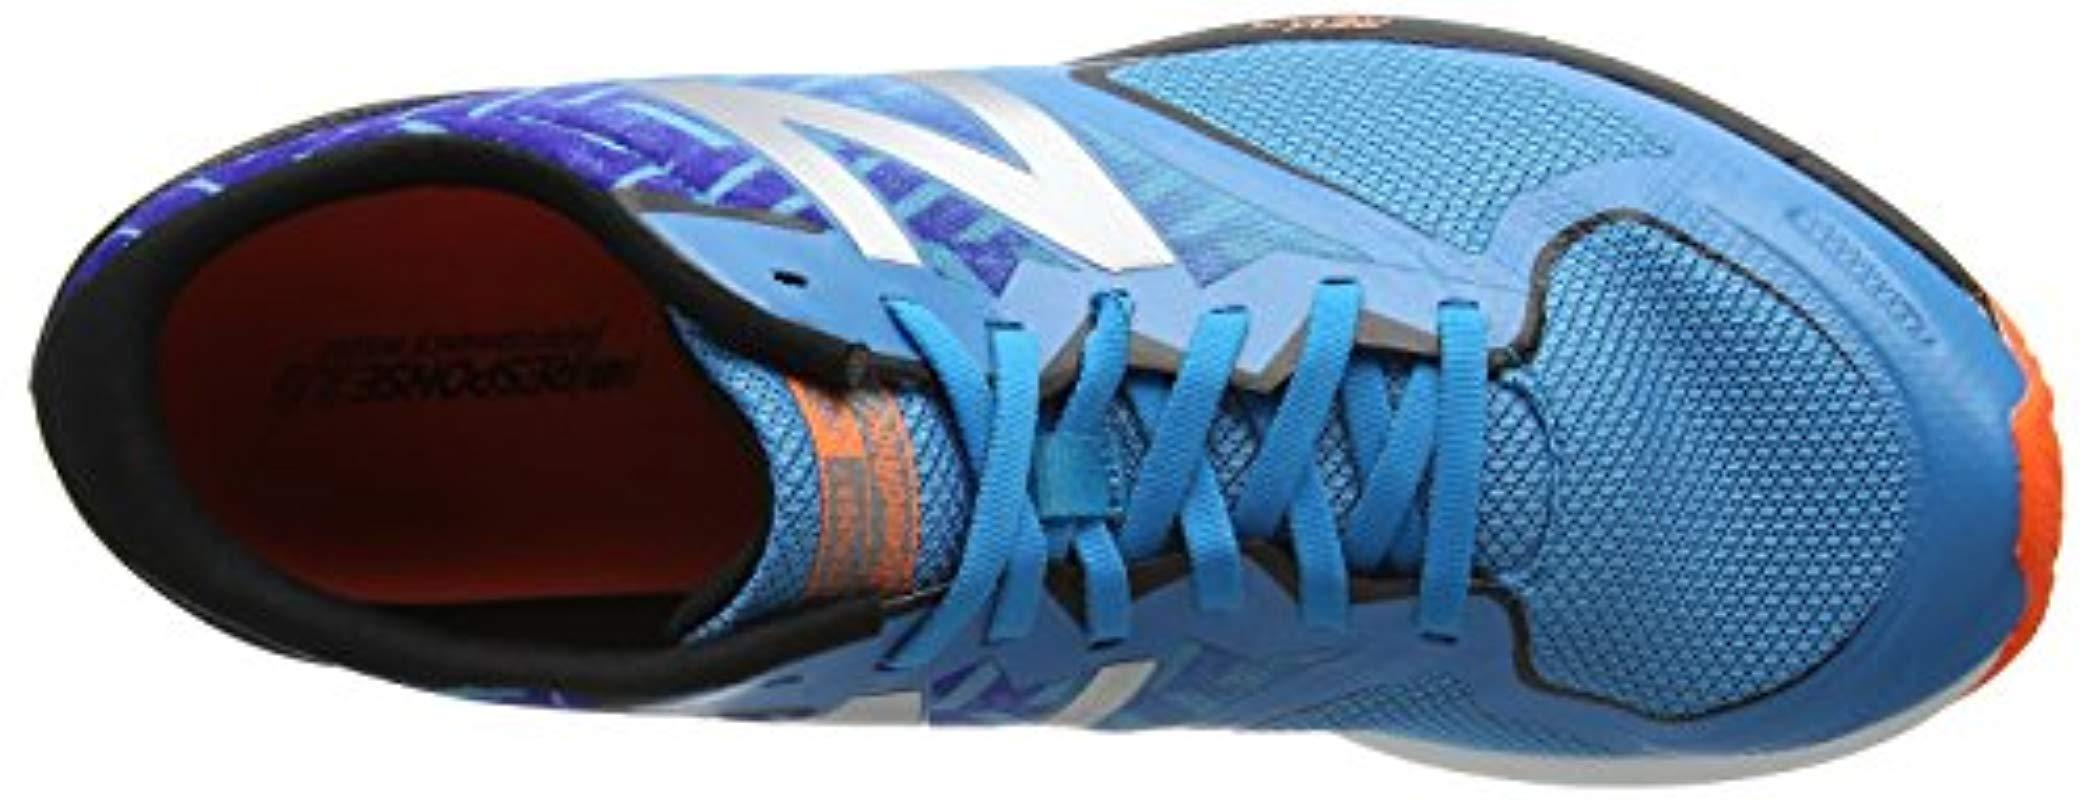 Temblar incrementar defecto  New Balance Synthetic Strobe V2 Running Shoes in Blue Blue Black (Blue) for  Men - Lyst